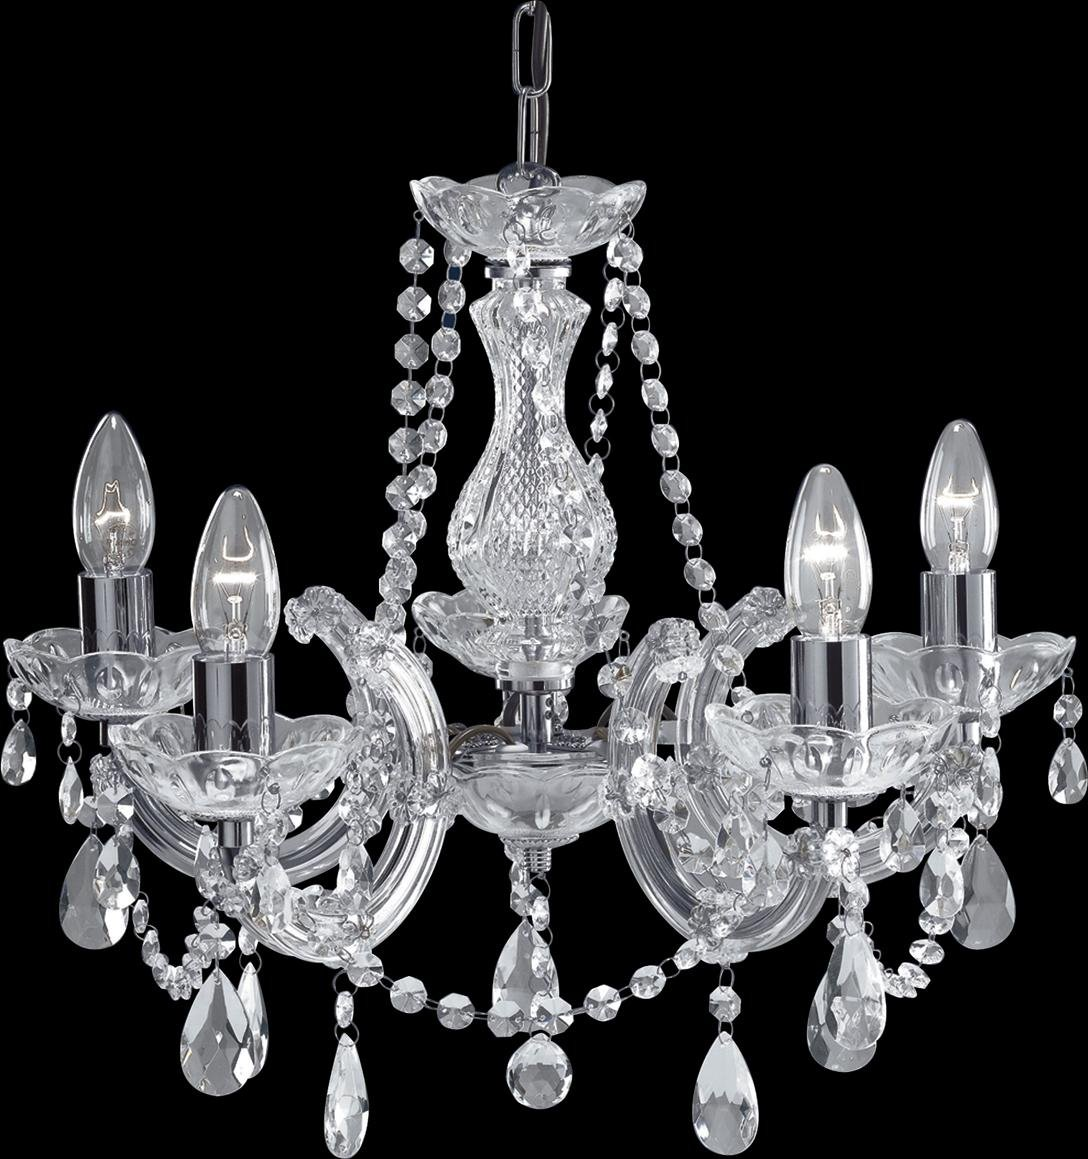 399 5 Marie Therese Chrome Light Chandelier With Crystal Droplets Searchlight Co Uk Kitchen Home